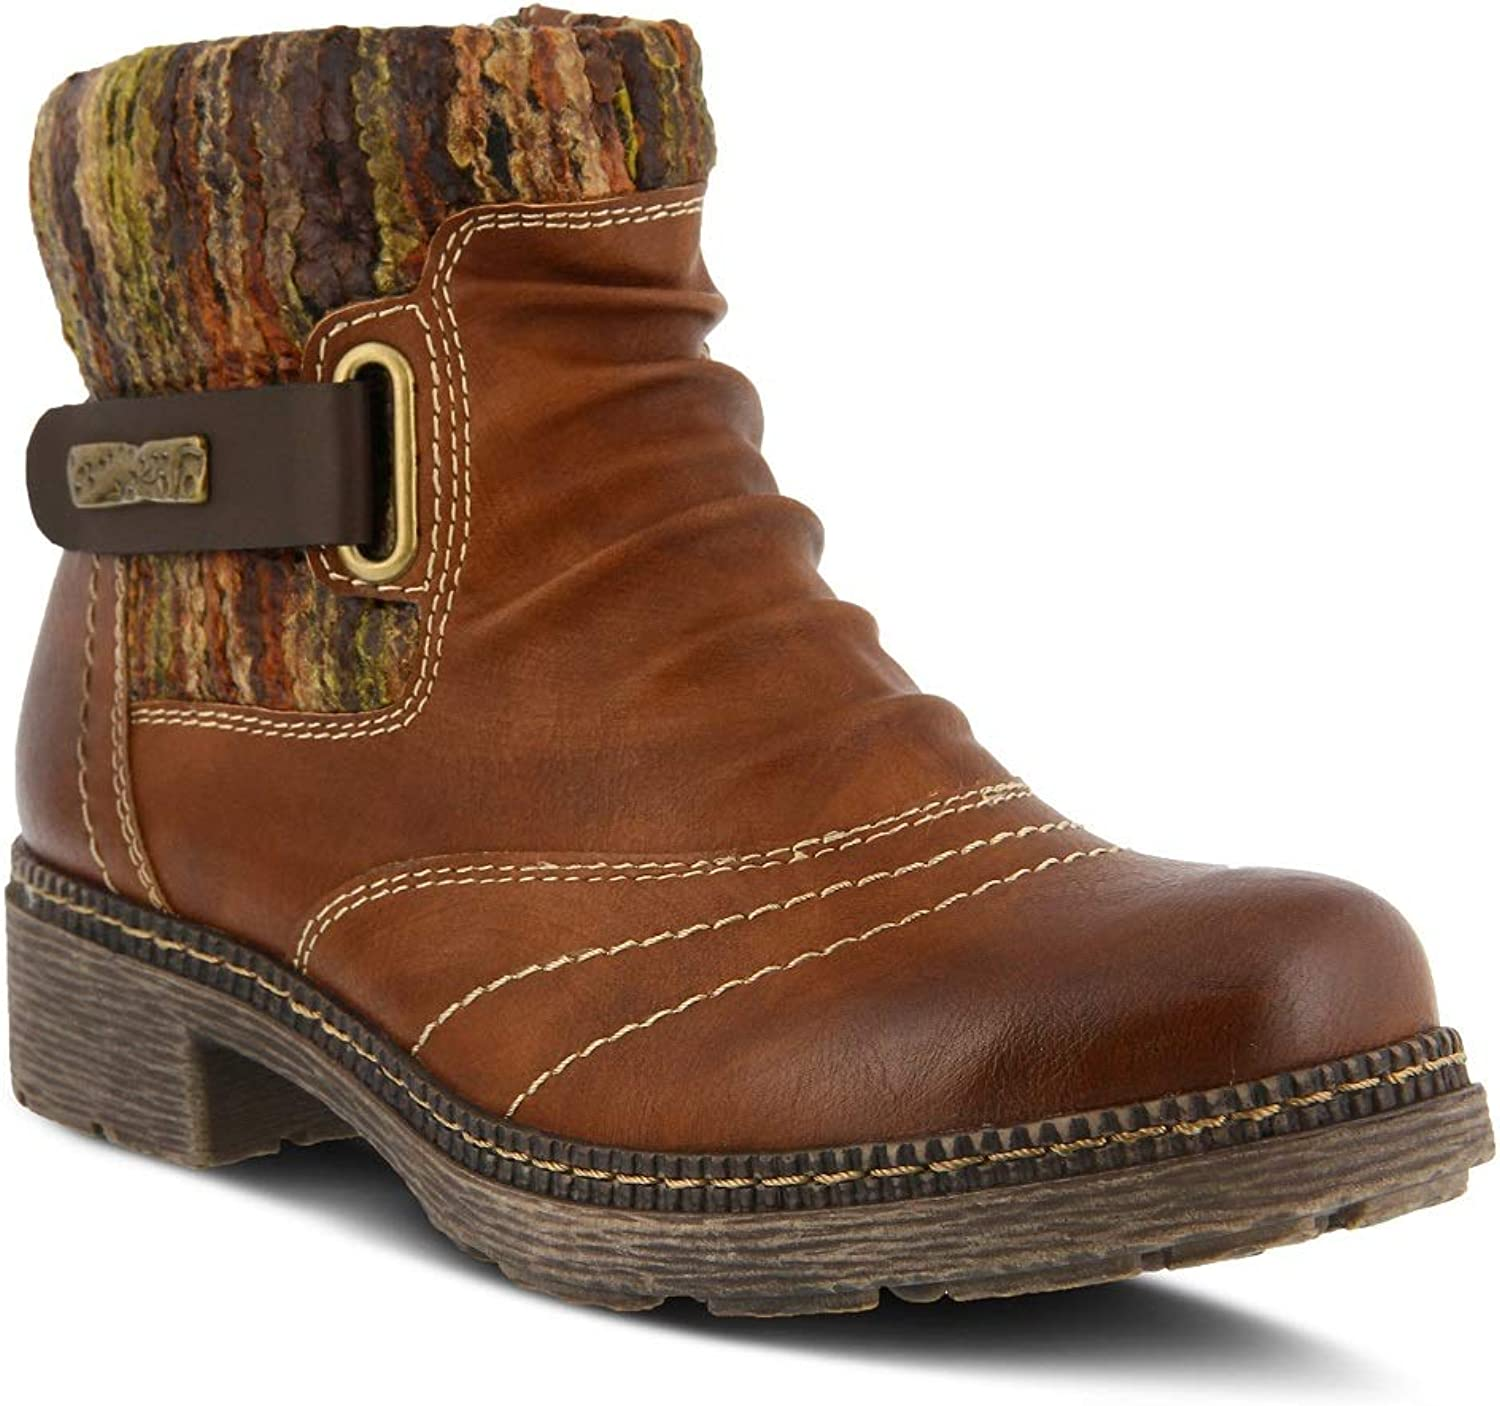 Spring Step Women's Citrine Bootie   color Brown   Leather Bootie